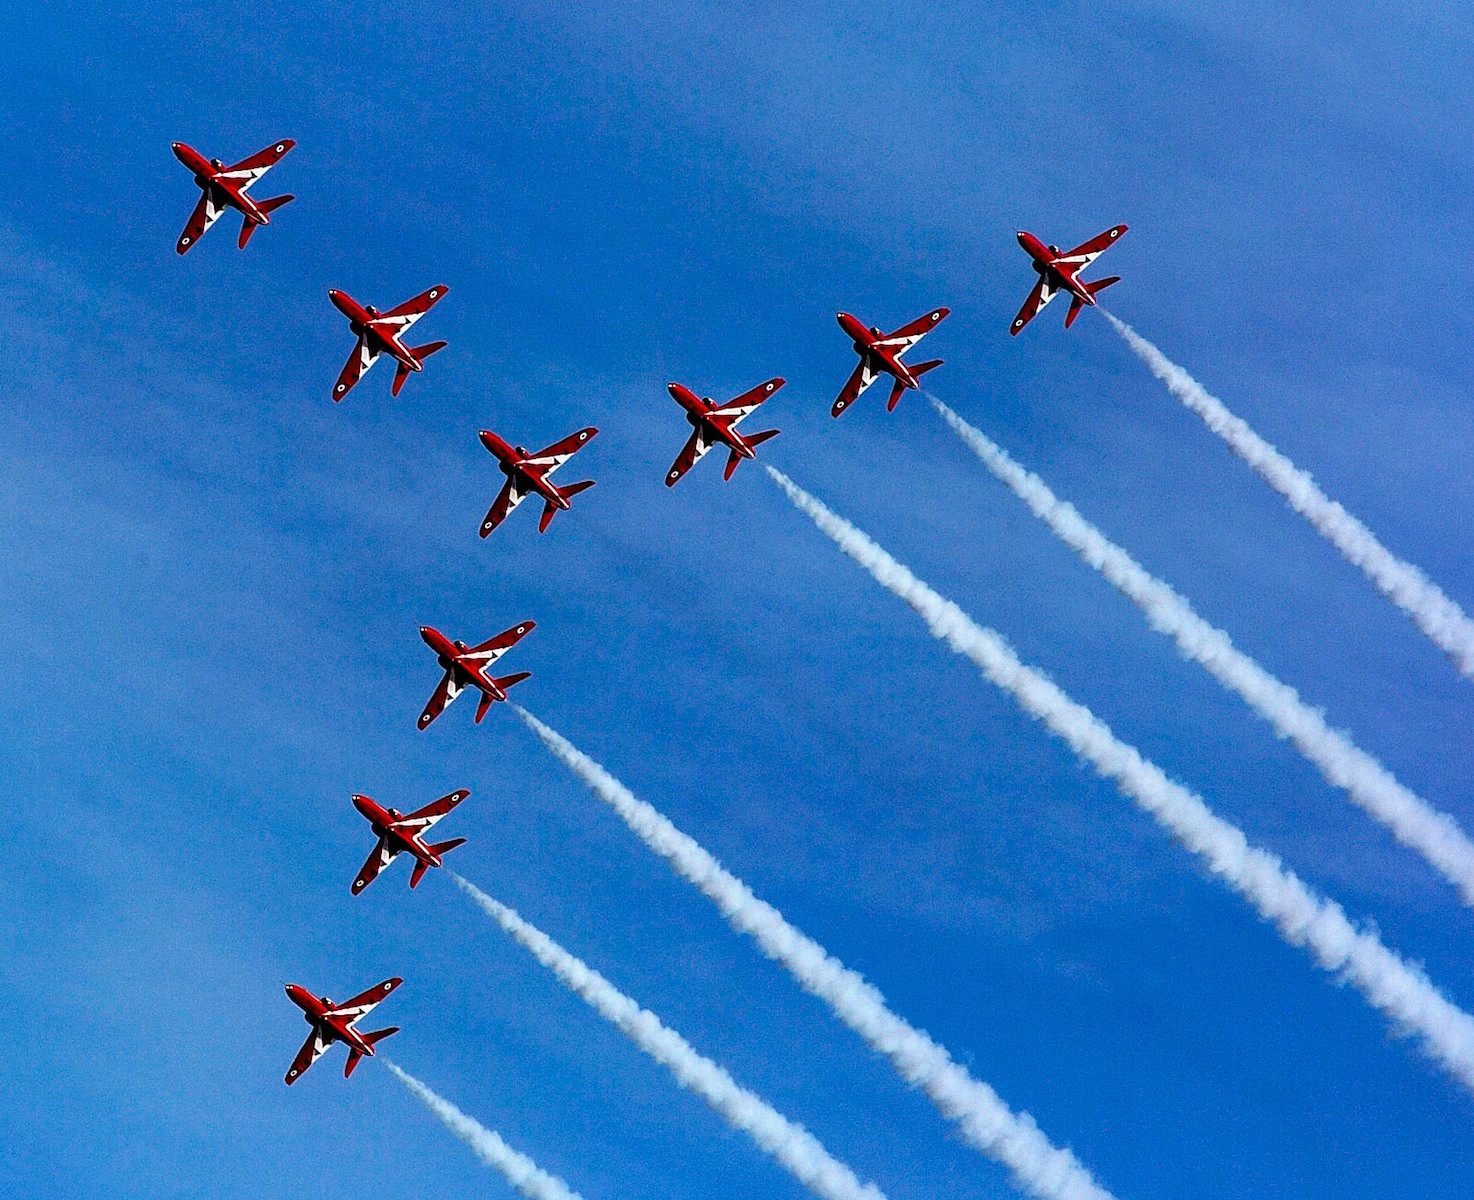 PDI - Red Arrows by Rowland White ( 7.5 marks)